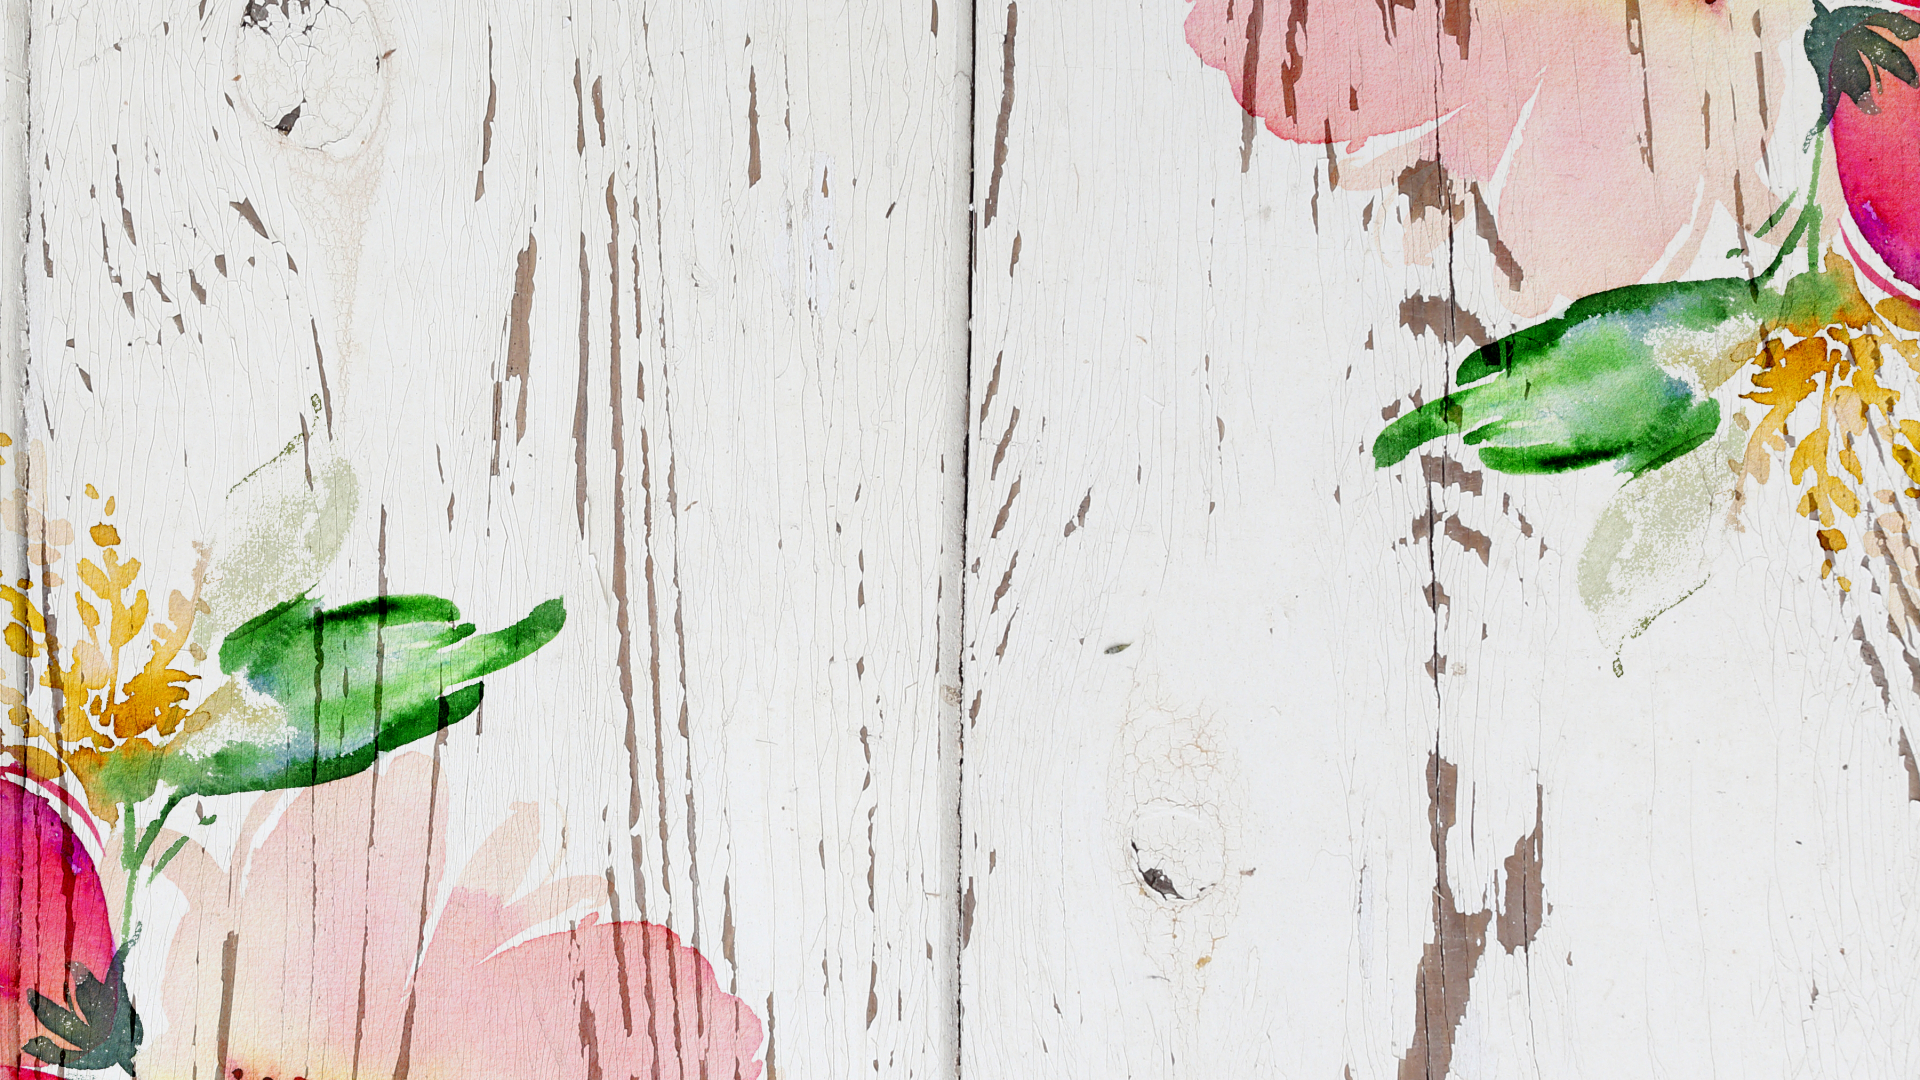 Free Download Farmhouse Inspired Digital Floral Paper Backgrounds 3600x3600 For Your Desktop Mobile Tablet Explore 24 Farmhouse Backgrounds Wallpaper Farmhouse Farmhouse Wallpapers Farmhouse Backgrounds